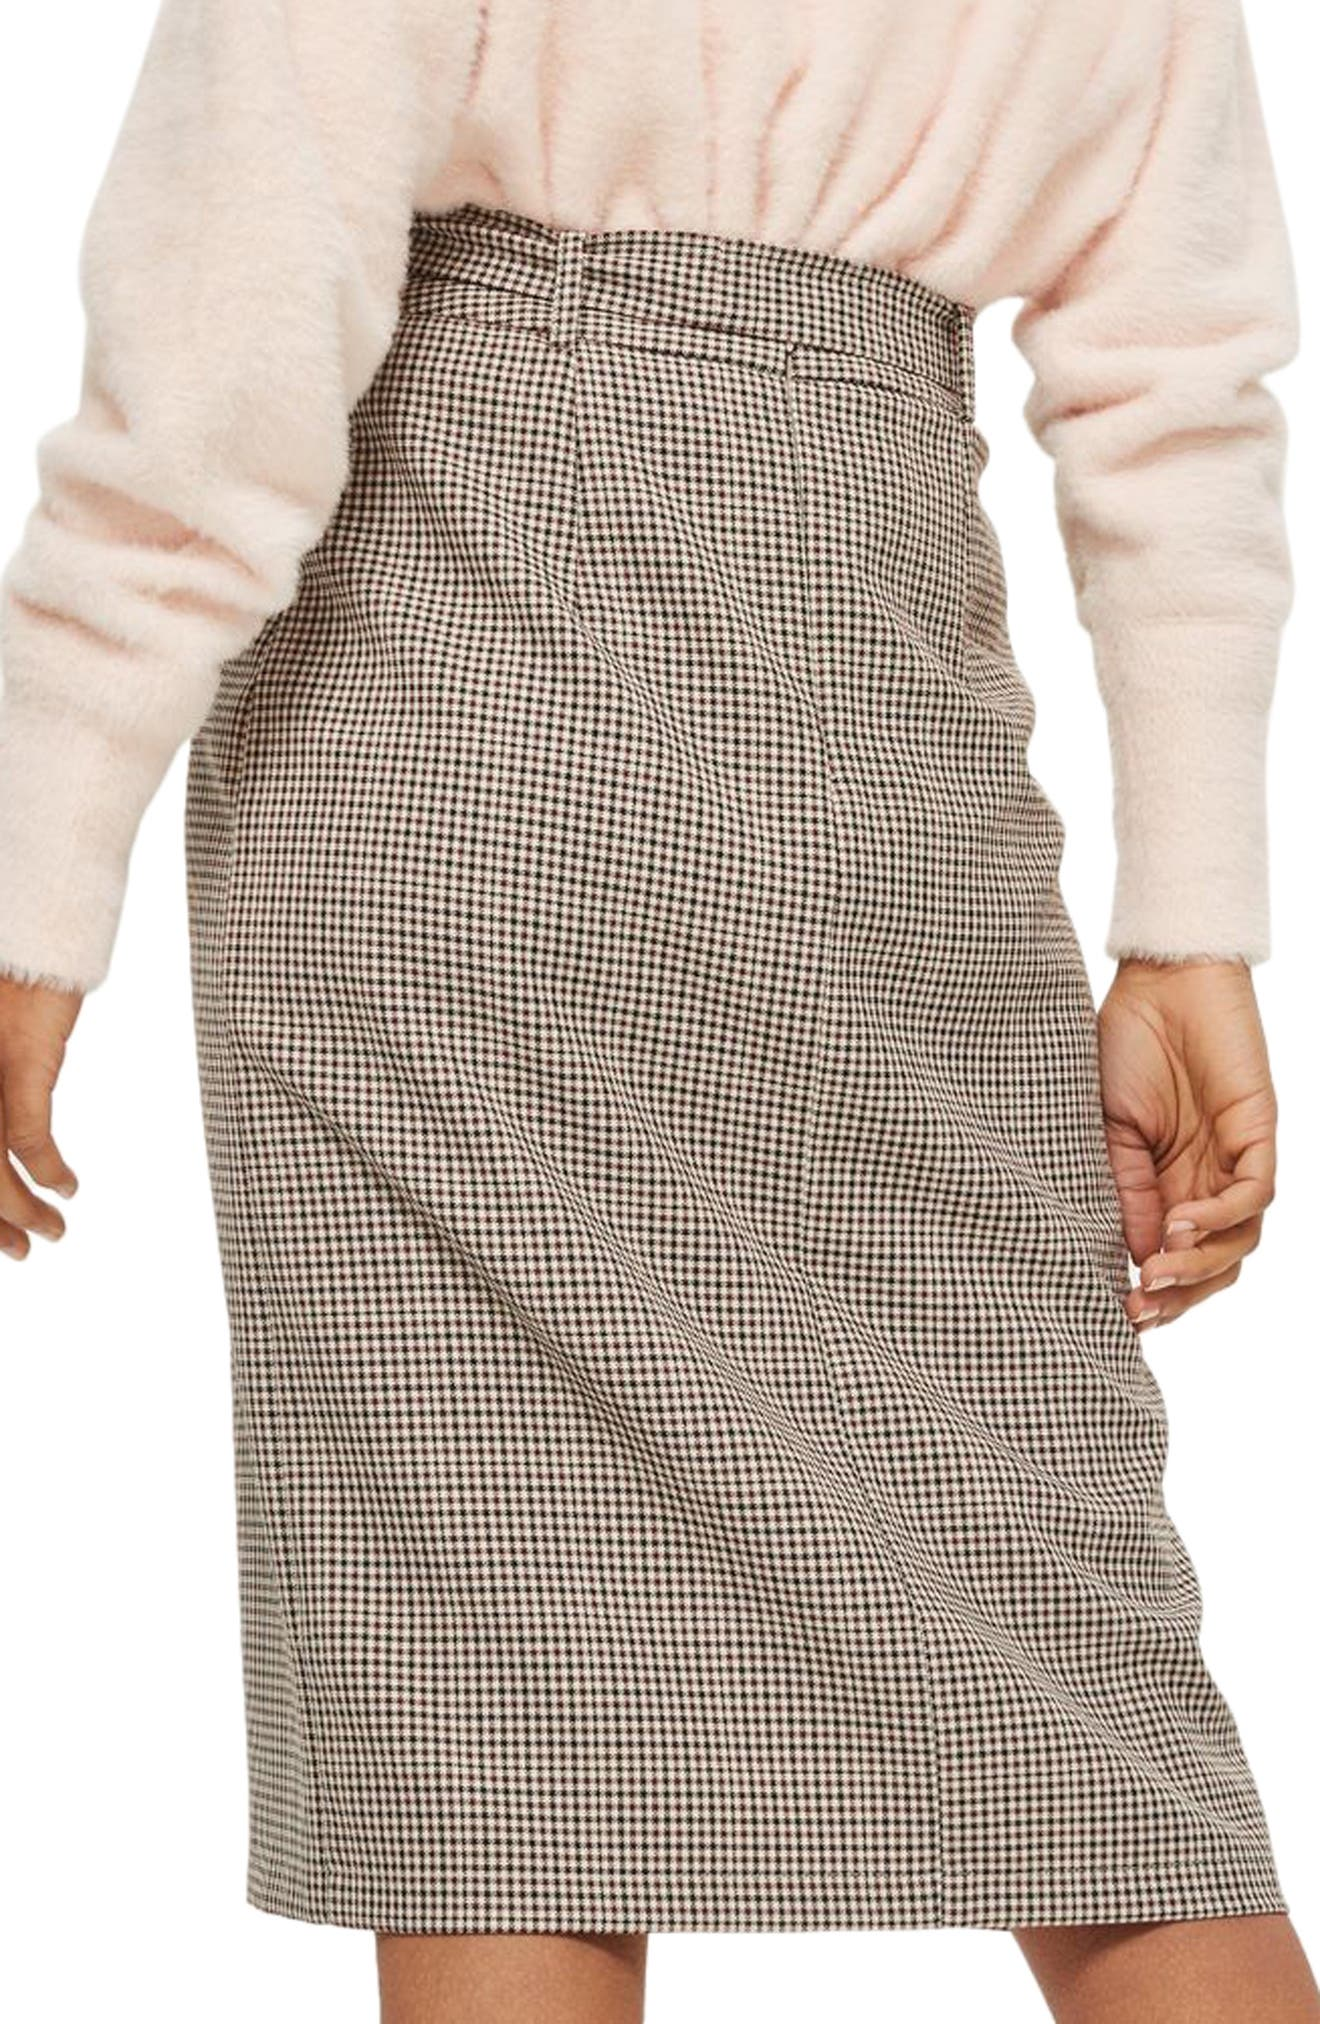 Button Through Check Pencil Skirt,                             Alternate thumbnail 2, color,                             230